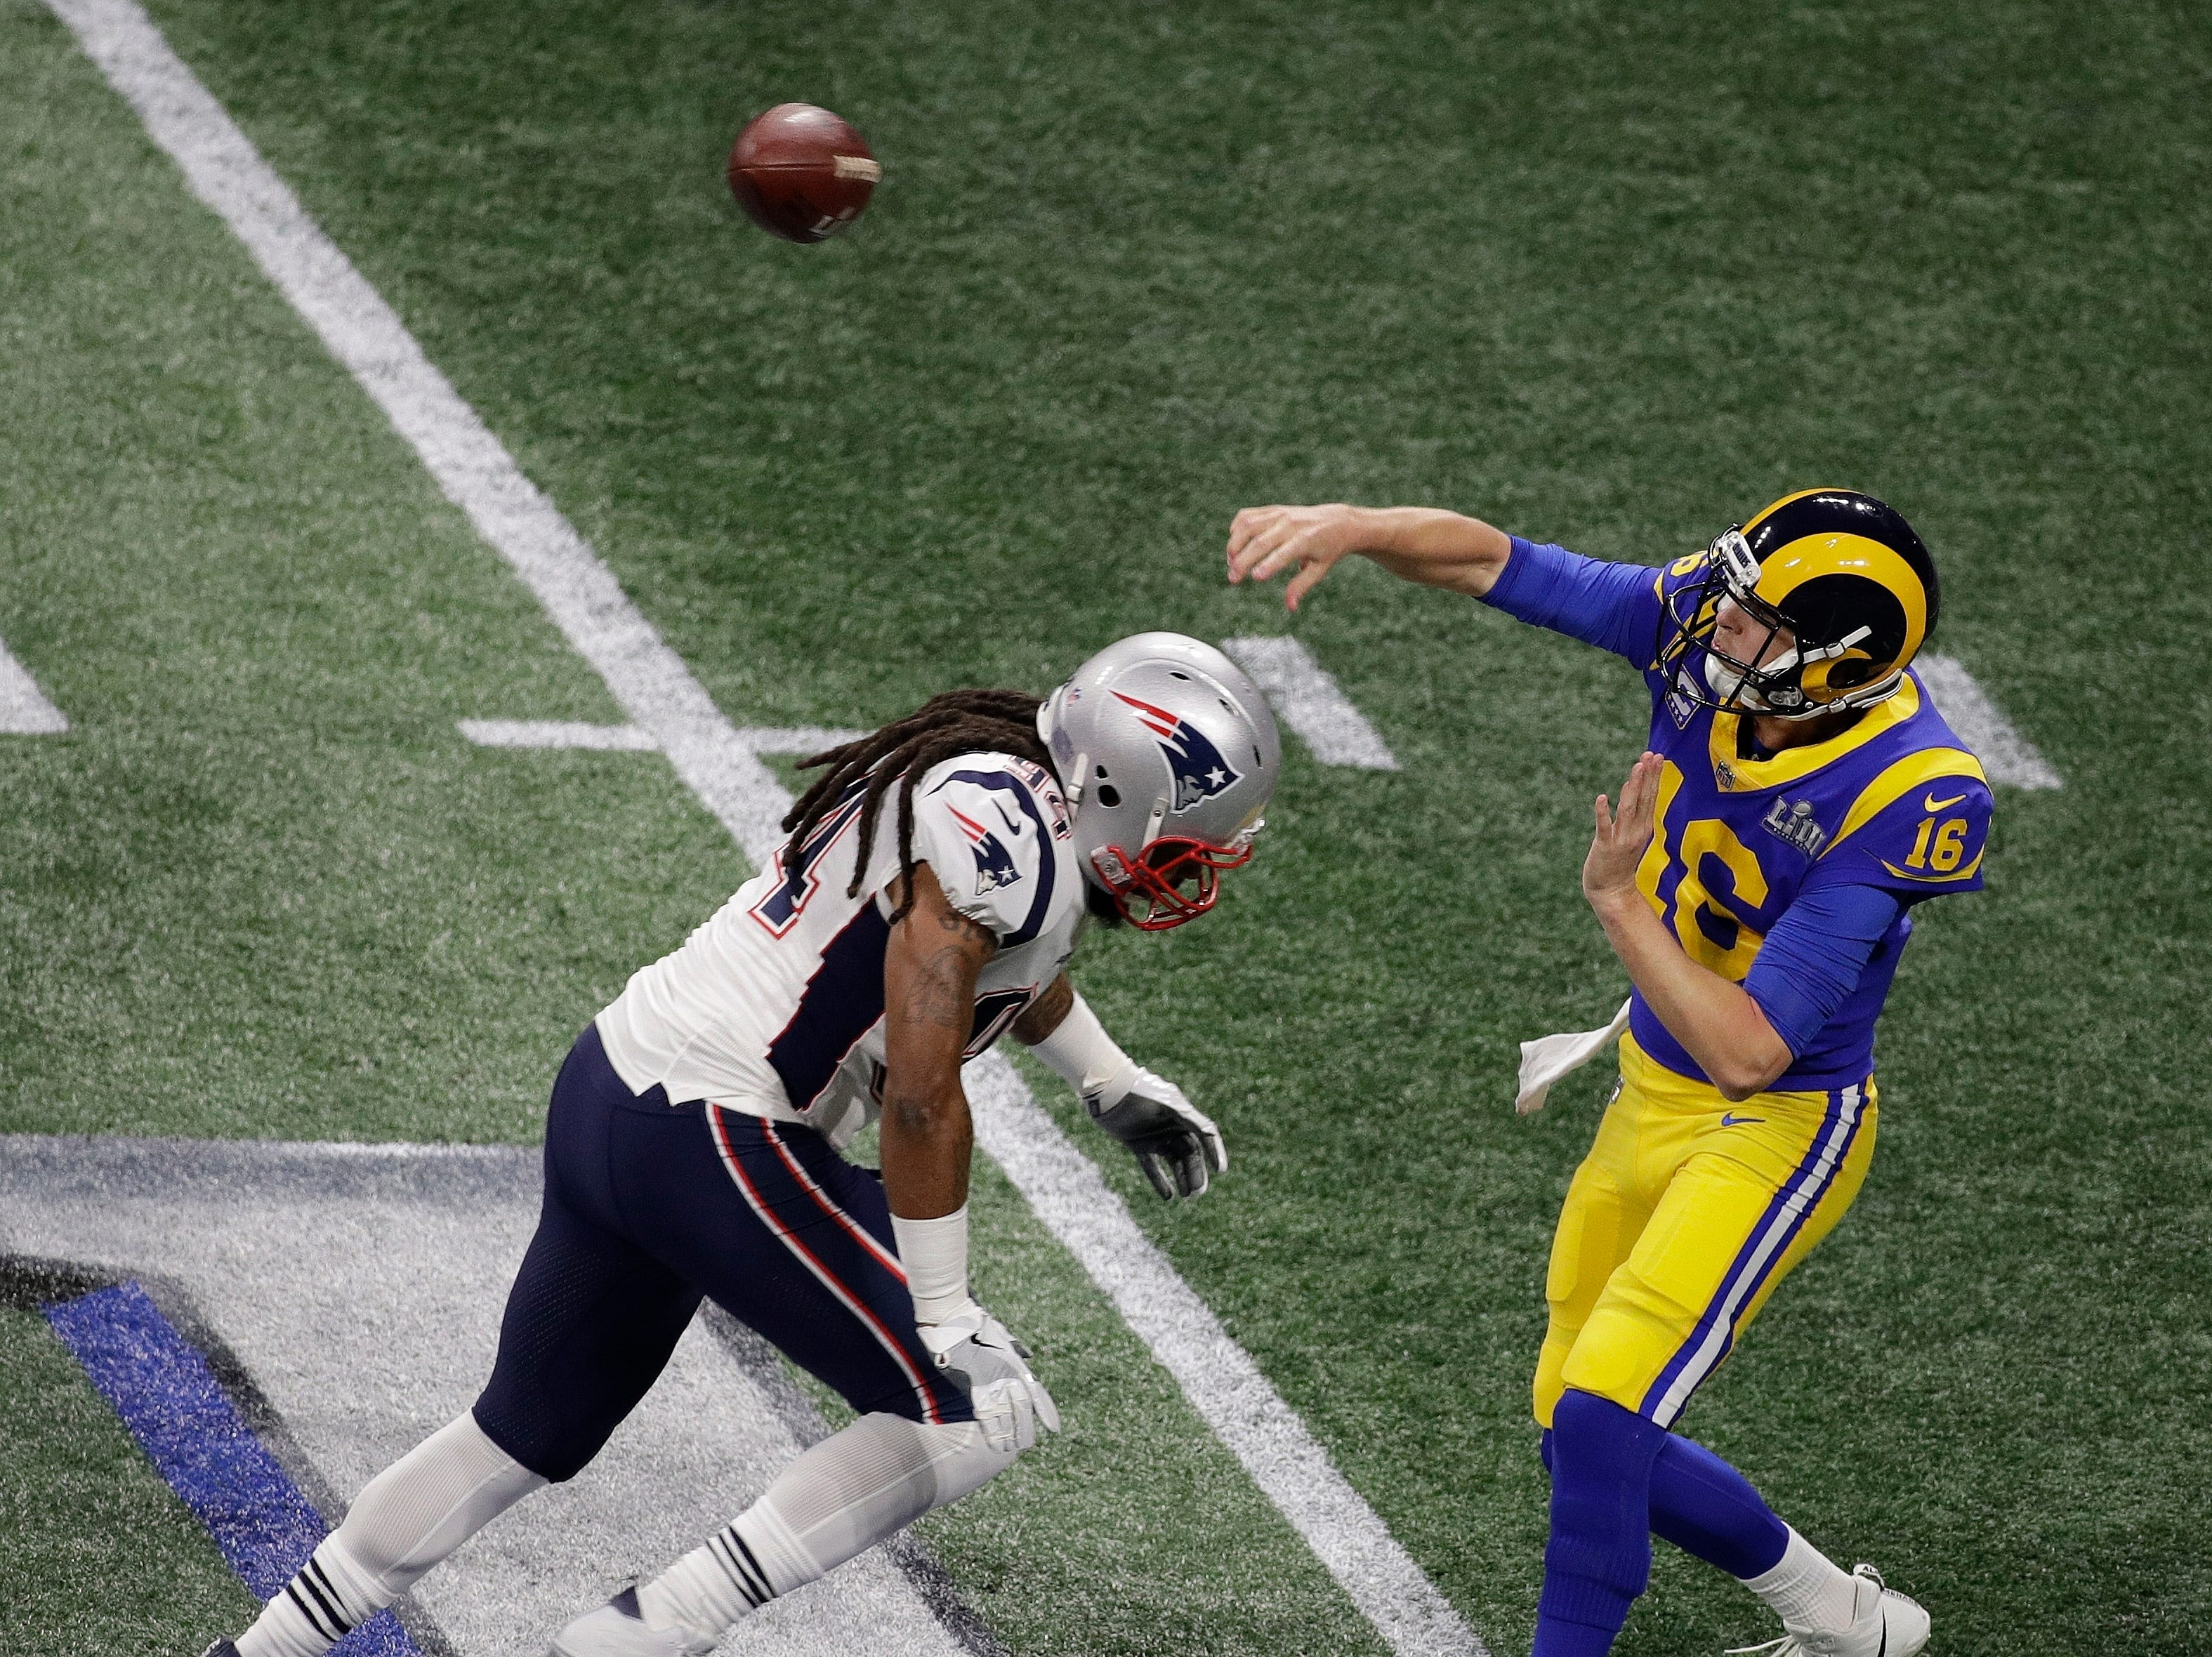 Los Angeles Rams' Jared Goff (16) works under pressure from New England Patriots' Adrian Clayborn (94) during the first half.